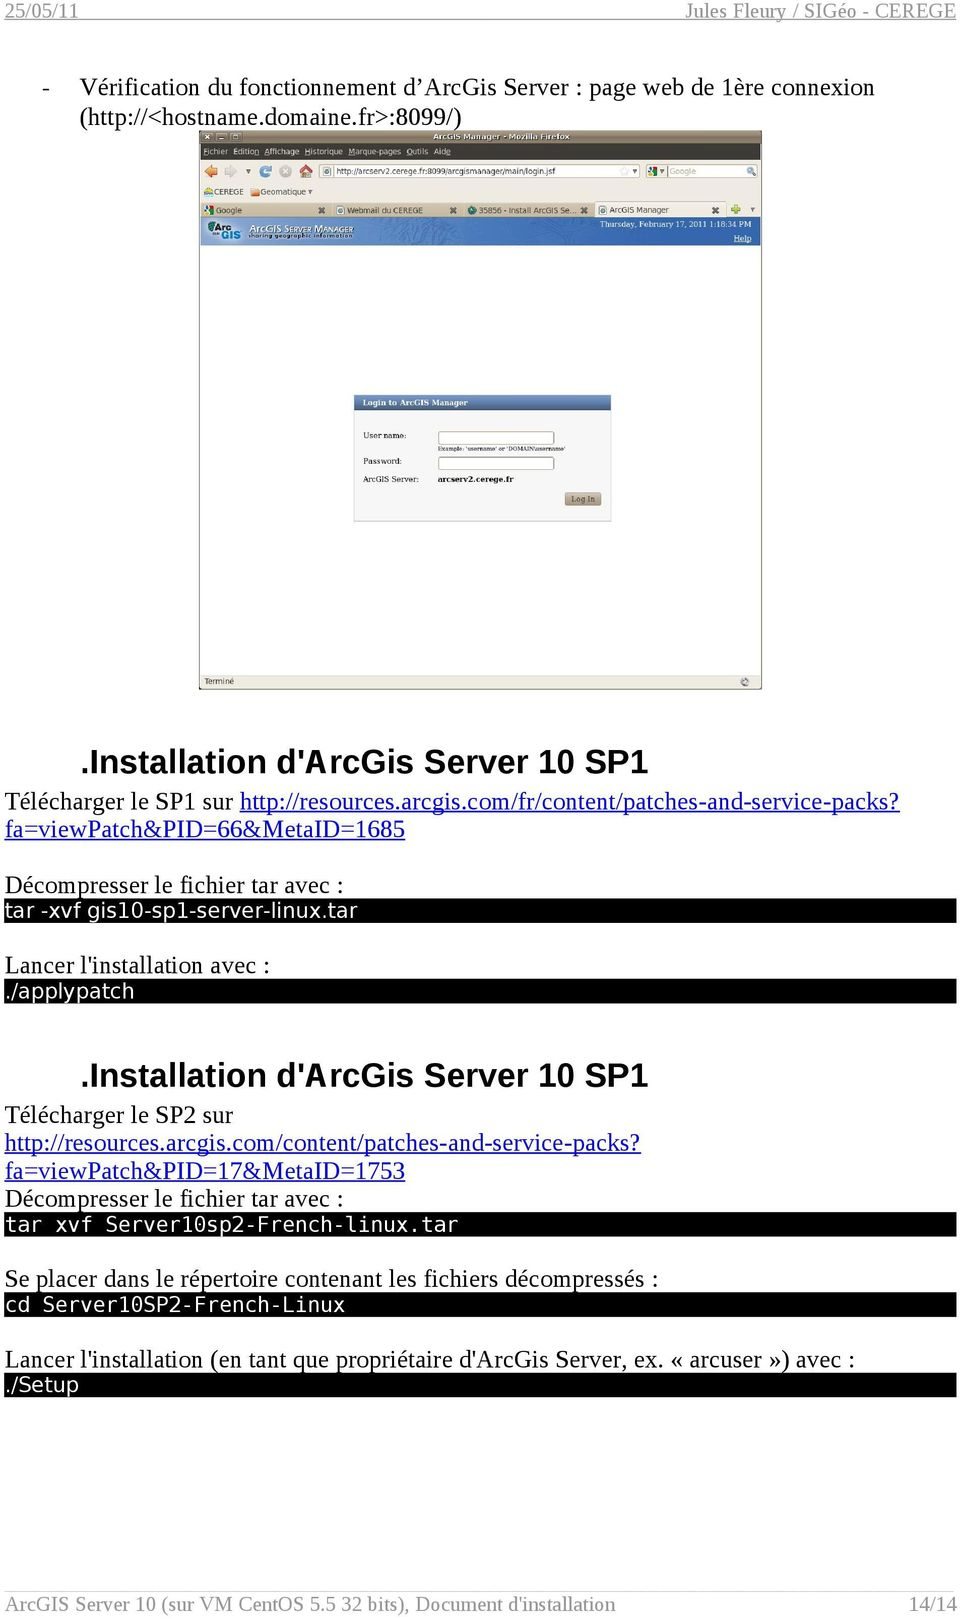 installation d'arcgis Server 10 SP1 Télécharger le SP2 sur http://resources.arcgis.com/content/patches-and-service-packs?